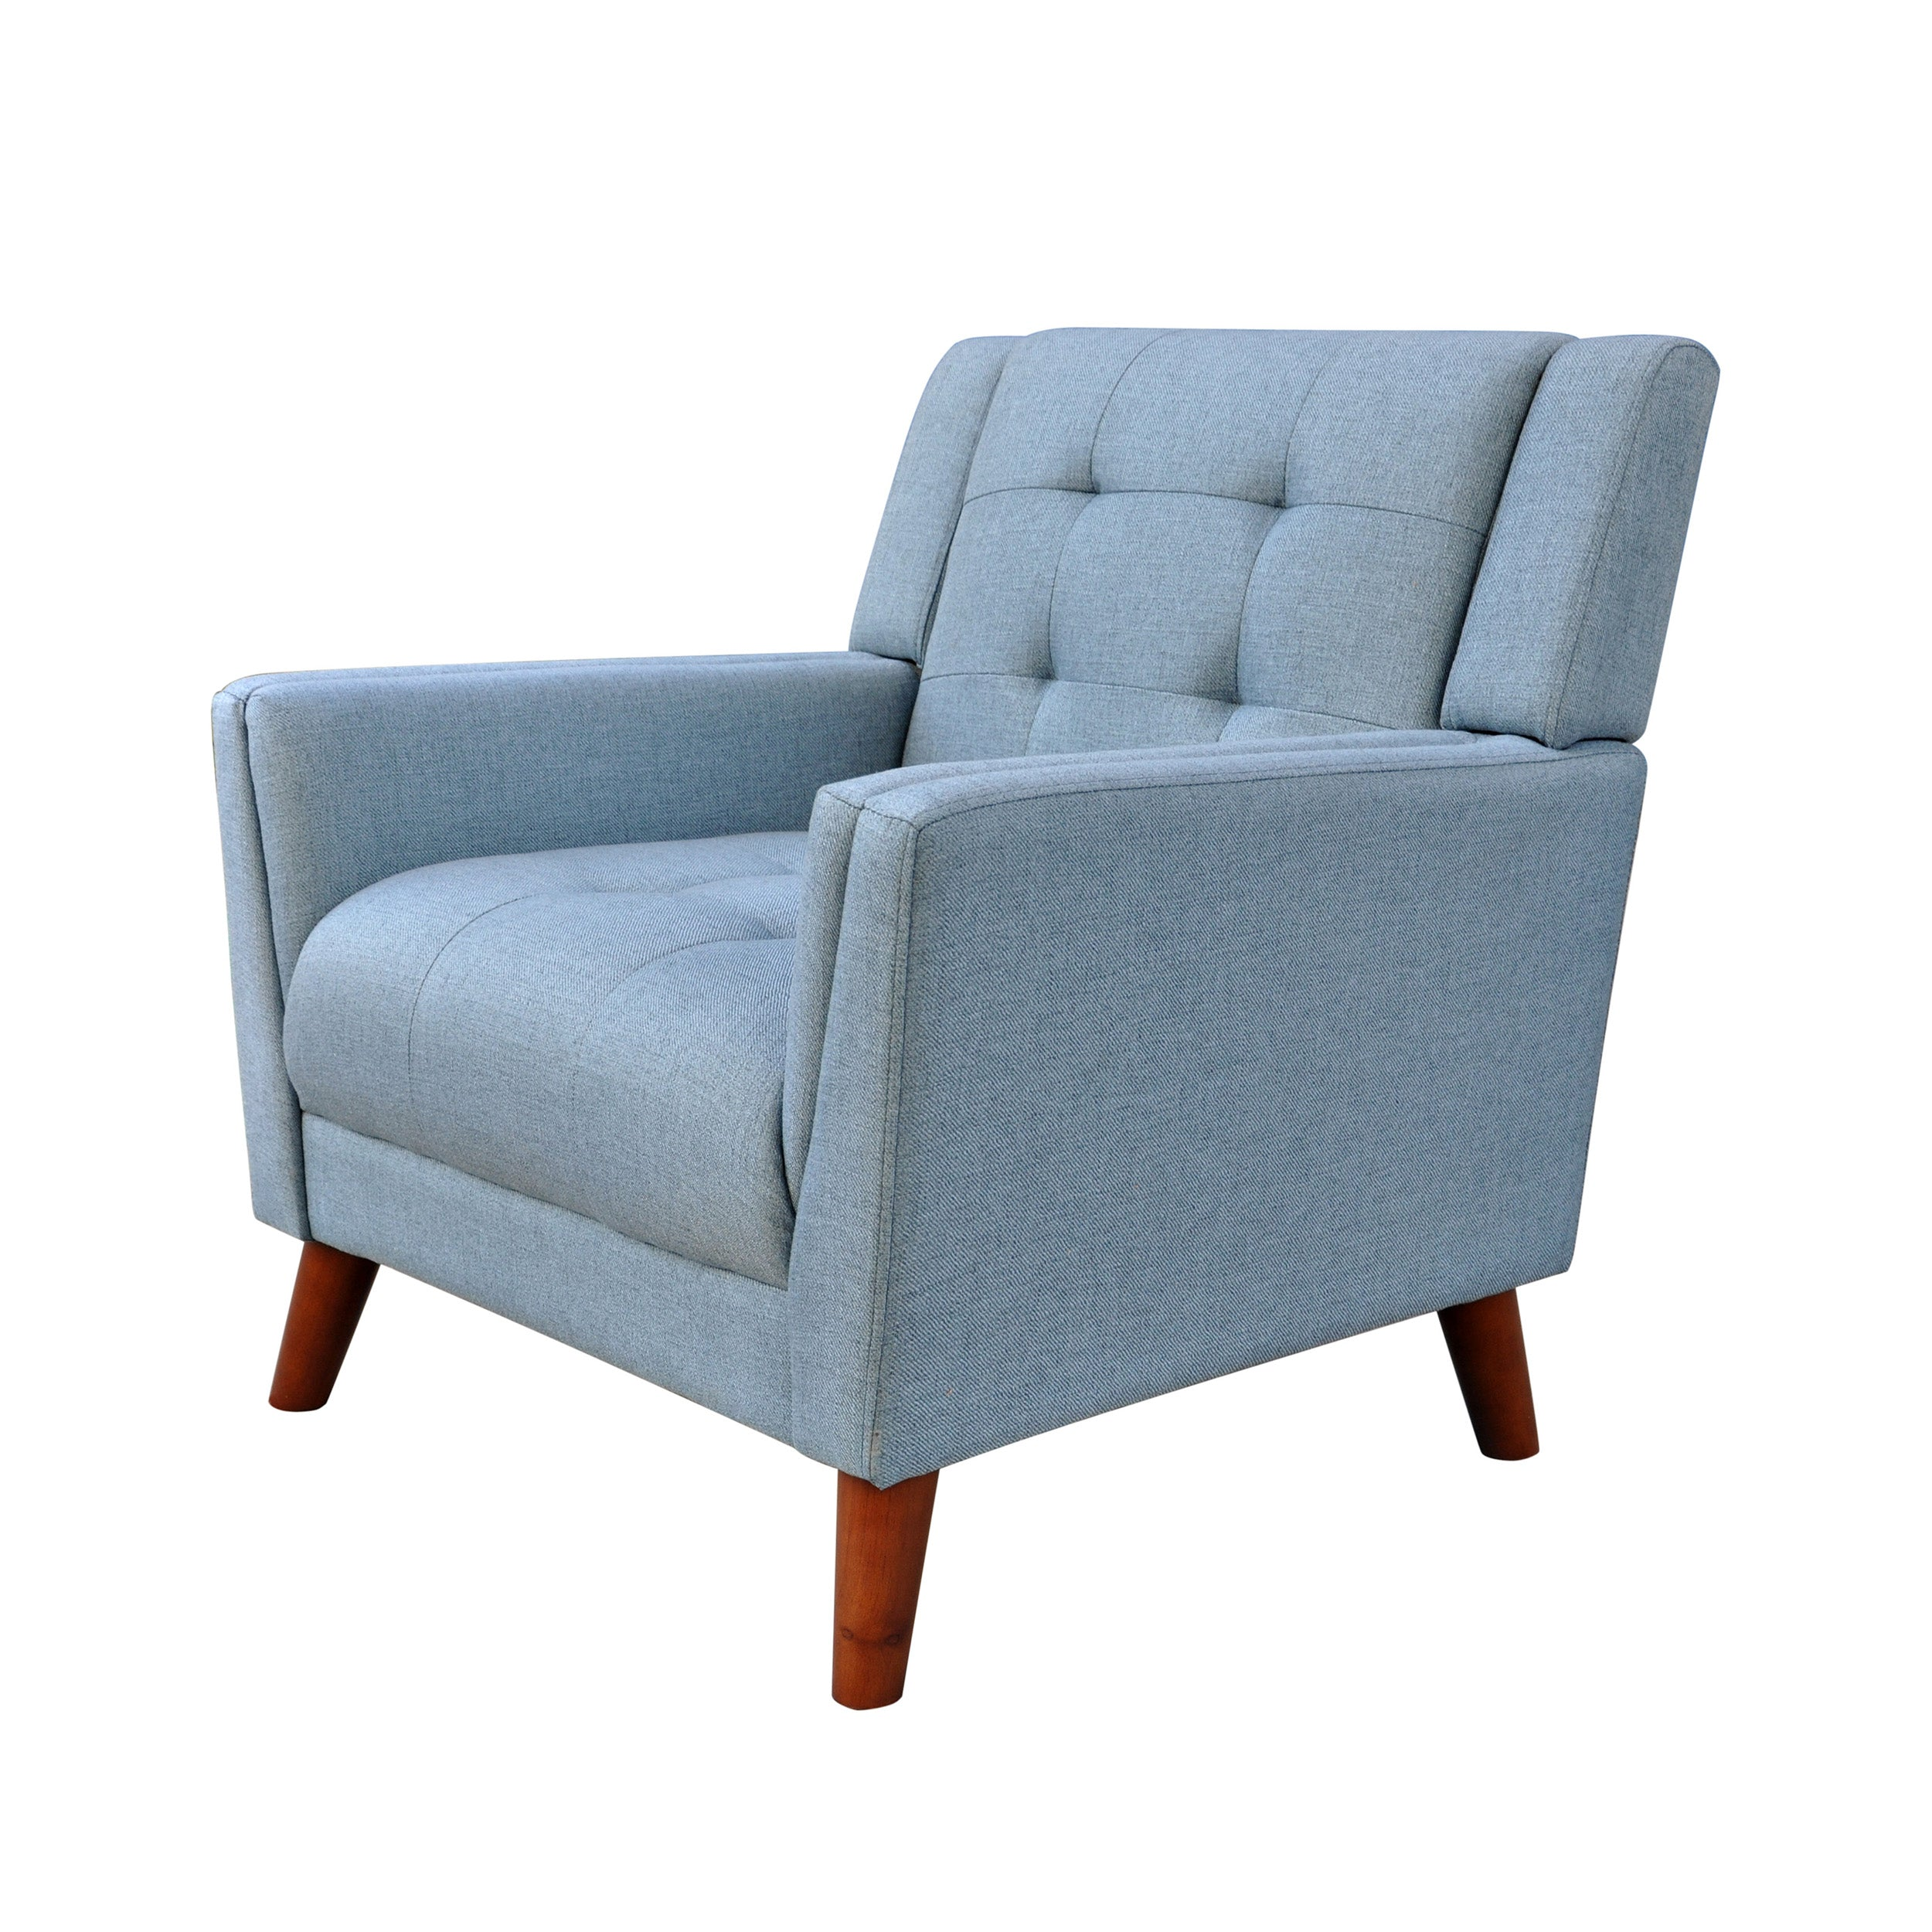 Anvith Mid Century Modern Fabric Arm Chair Blue